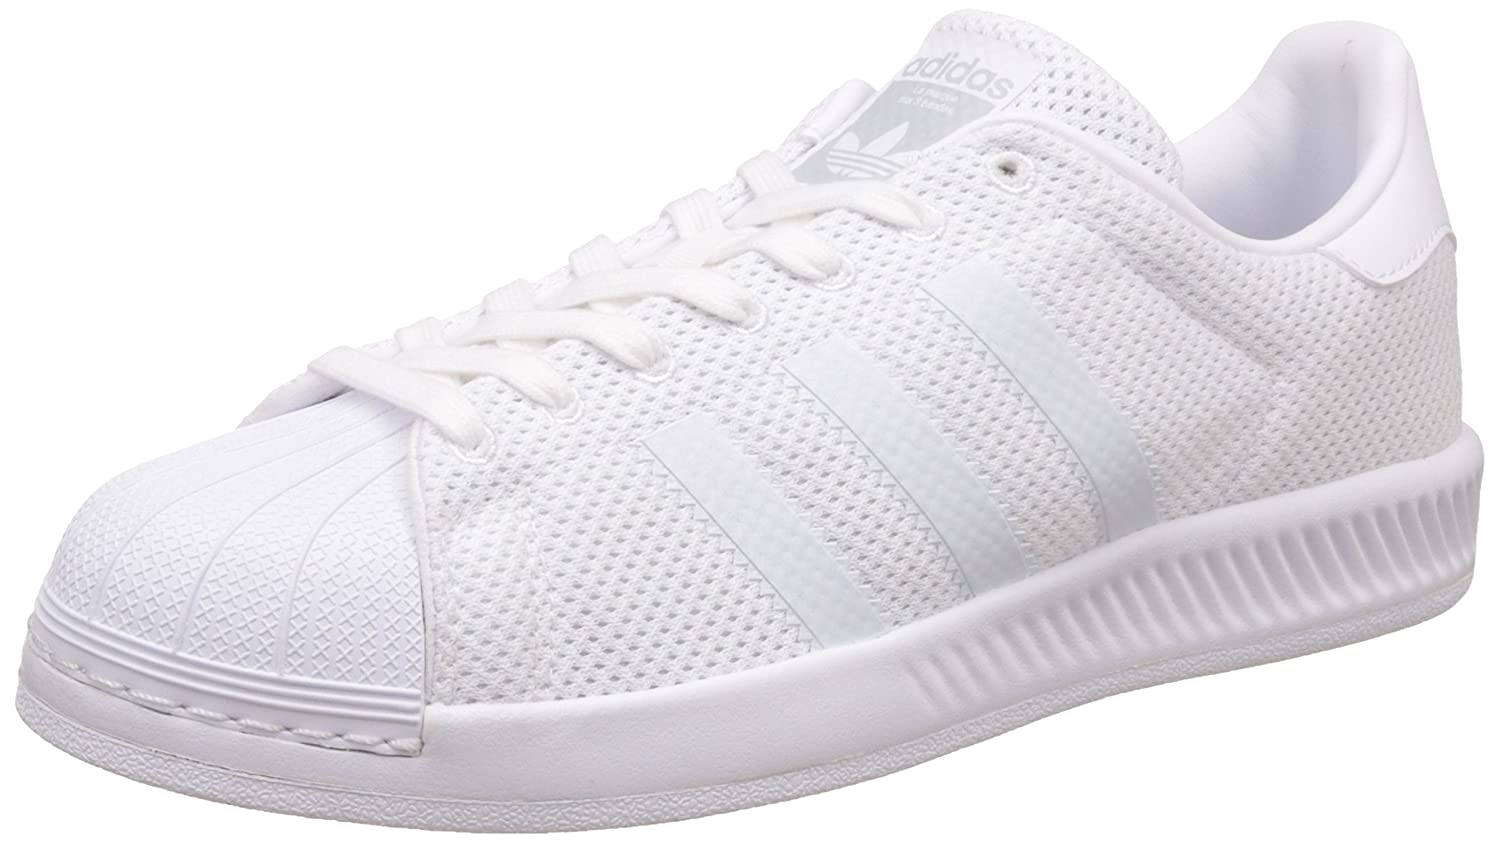 bd870ff308309d adidas Originals Men s Superstar Bounce Ftwwht Sneakers - 10 UK India  (44.67 EU)  Buy Online at Low Prices in India - Amazon.in